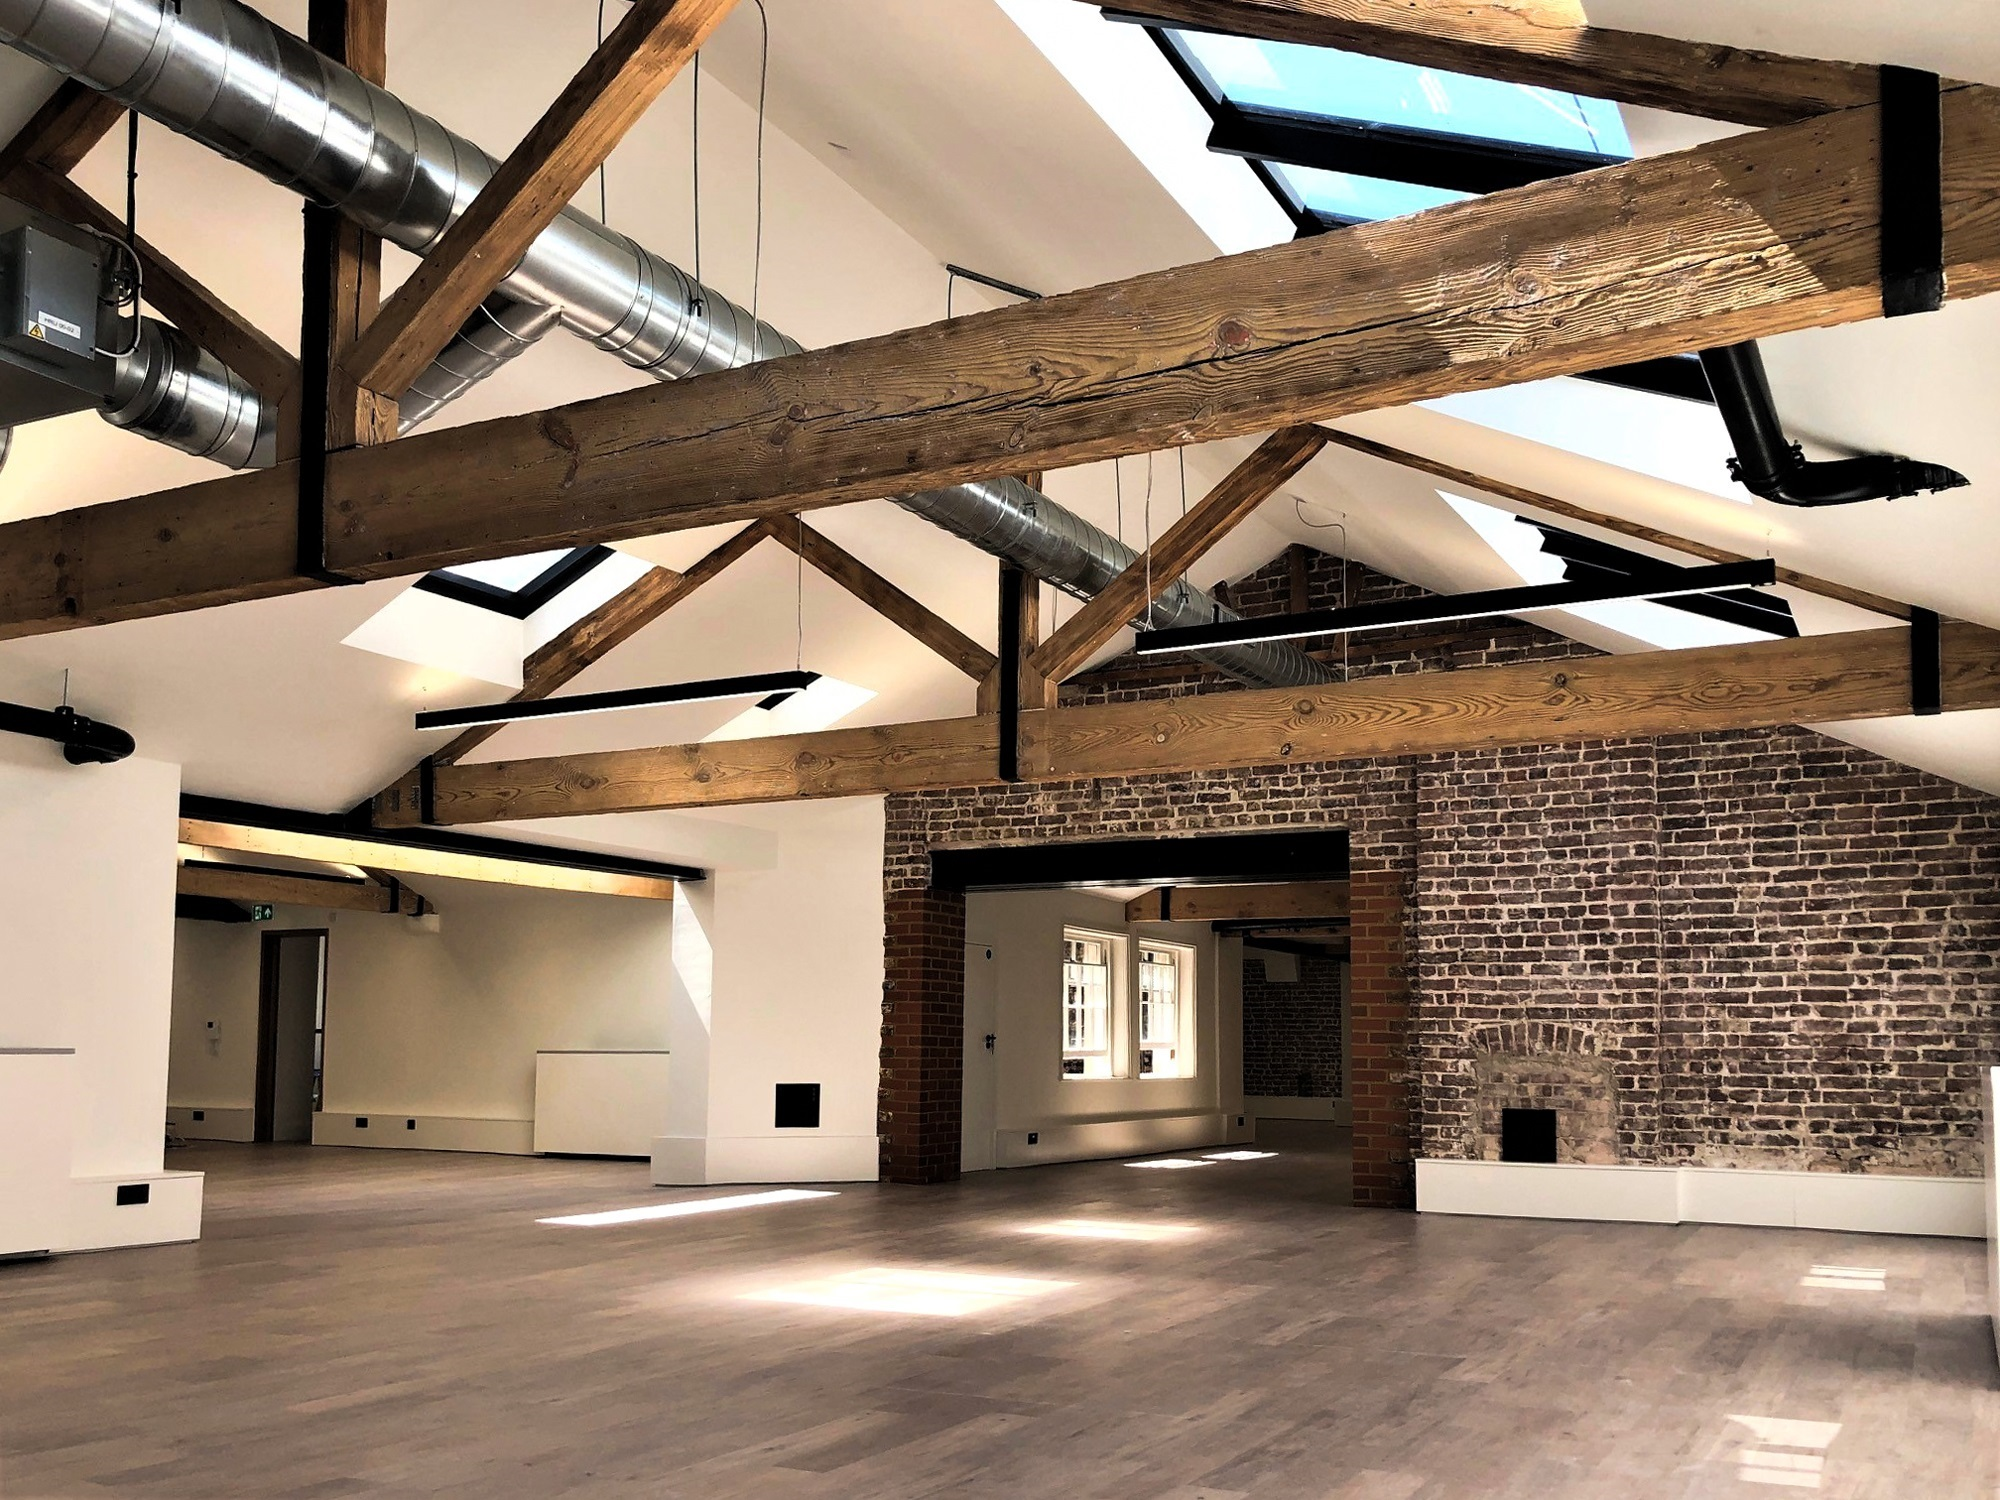 an empty building with exposed wooden beams and a brick wall